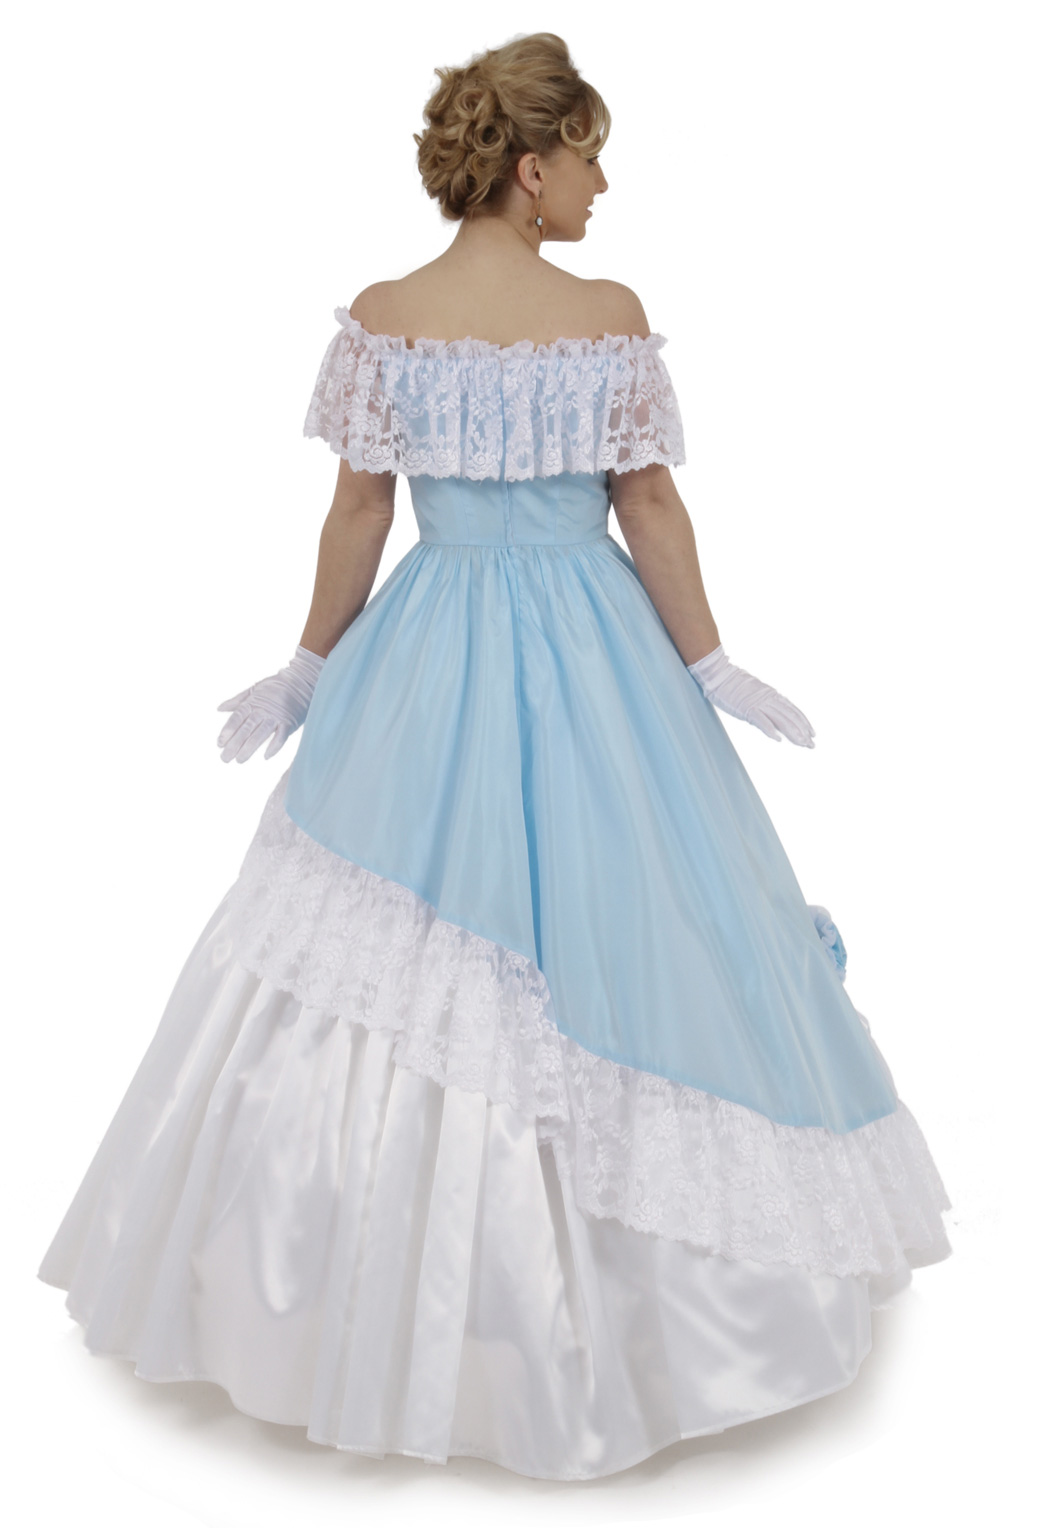 Marelda Victorian Ball Gown | Recollections